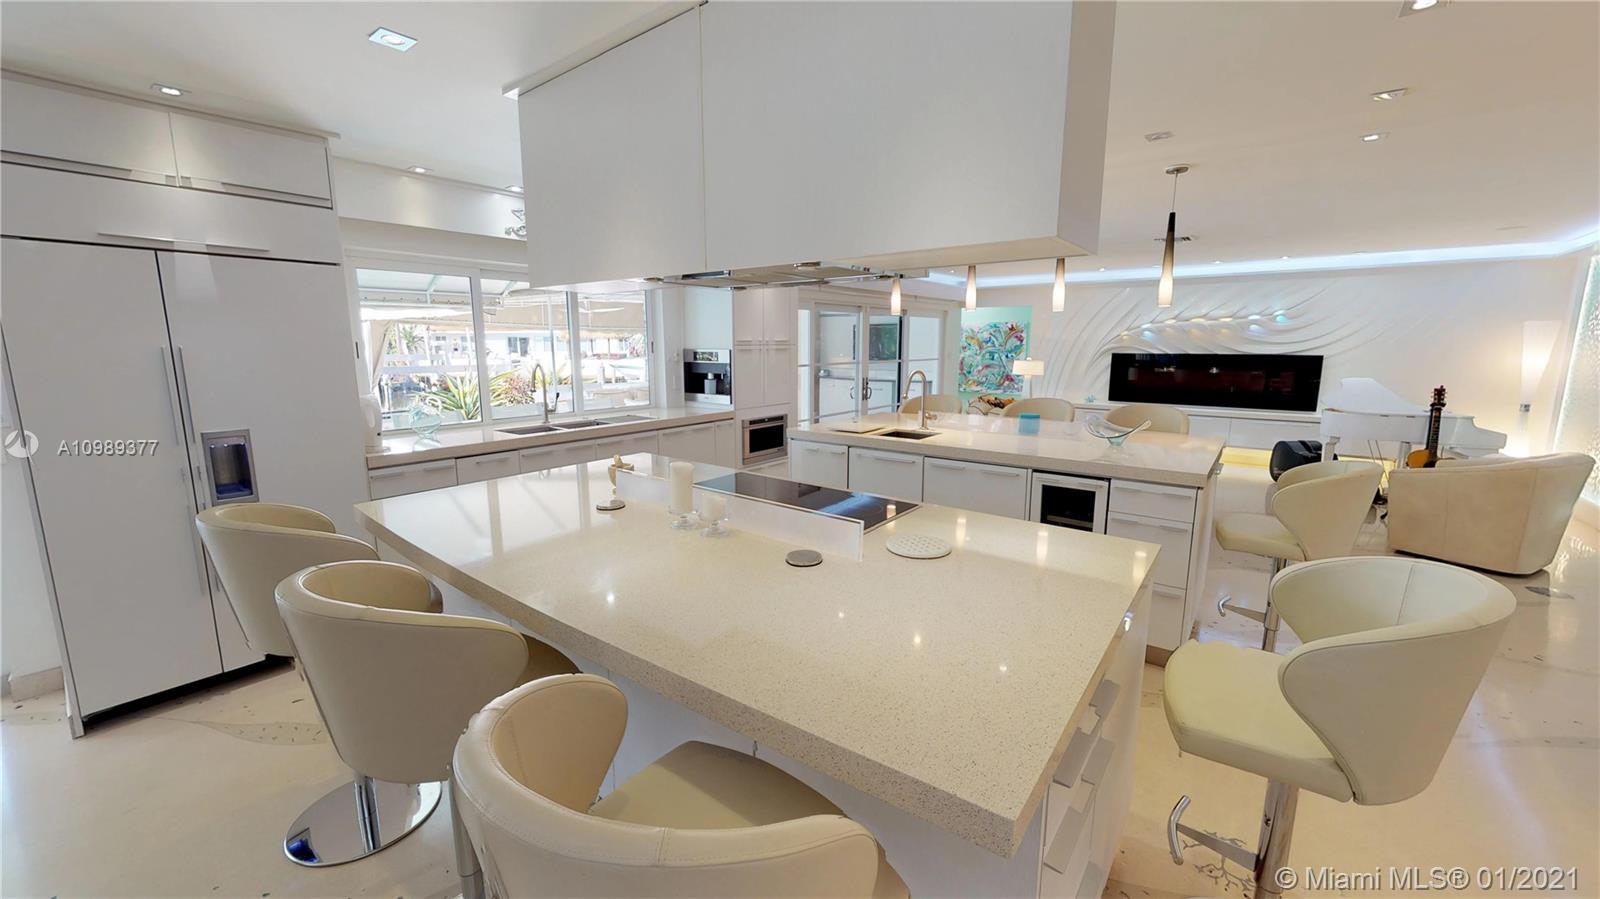 Waterfront GEM with open floor plan 3bed + den/office room. Stunning in every way. Remodeled to perf